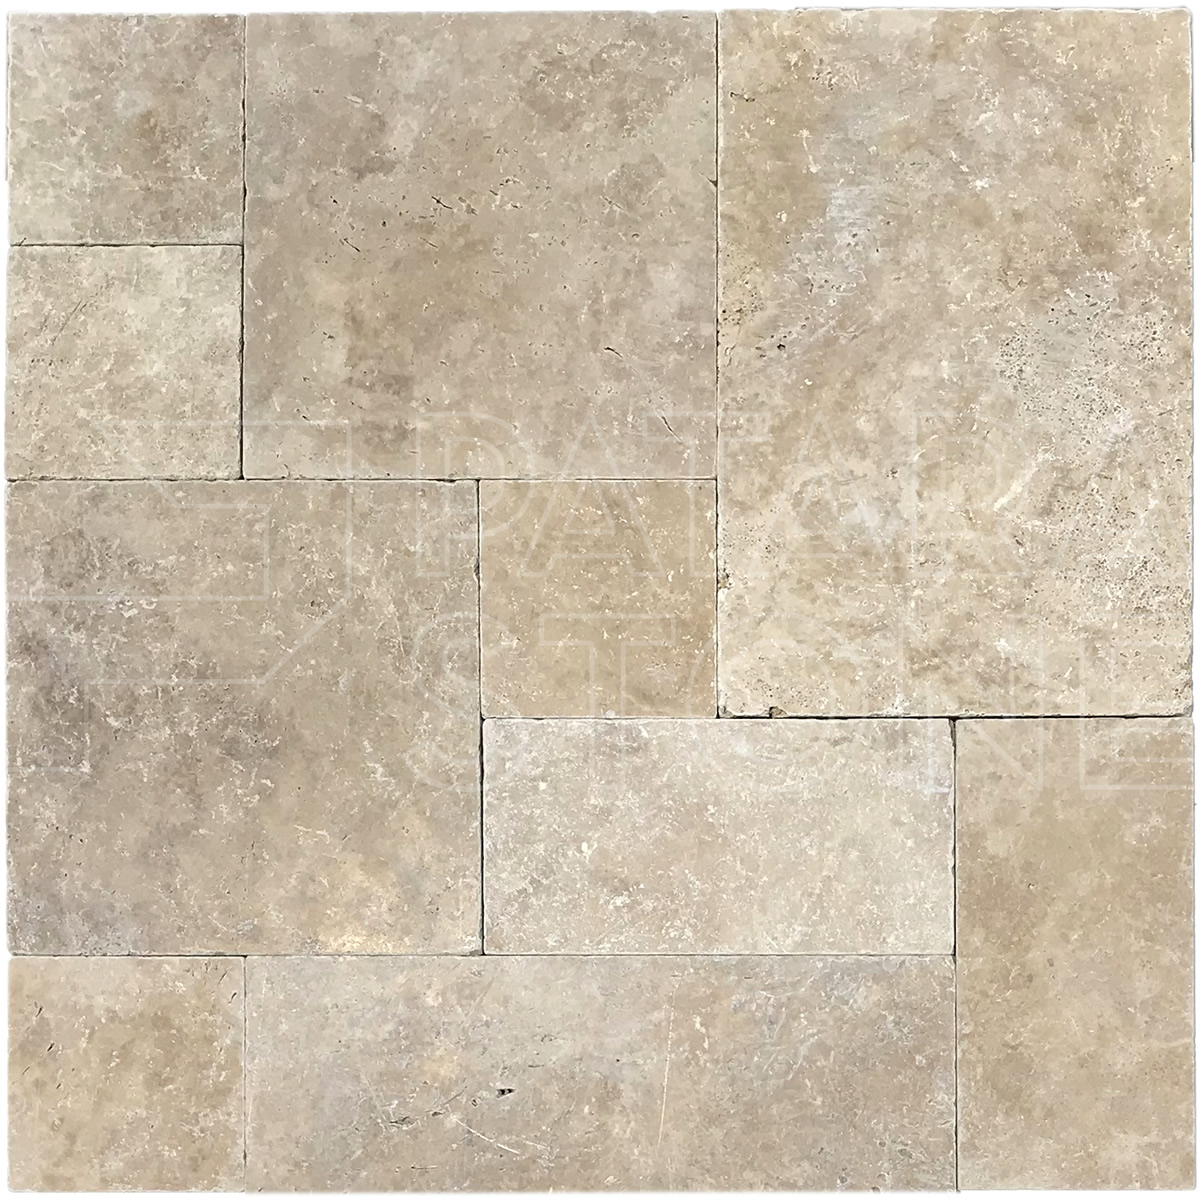 Tumbled Riverbed Walnut Beige 3: SAVANNAH WALNUT TUMBLED FRENCH PATTERN 3 Cm PAVER